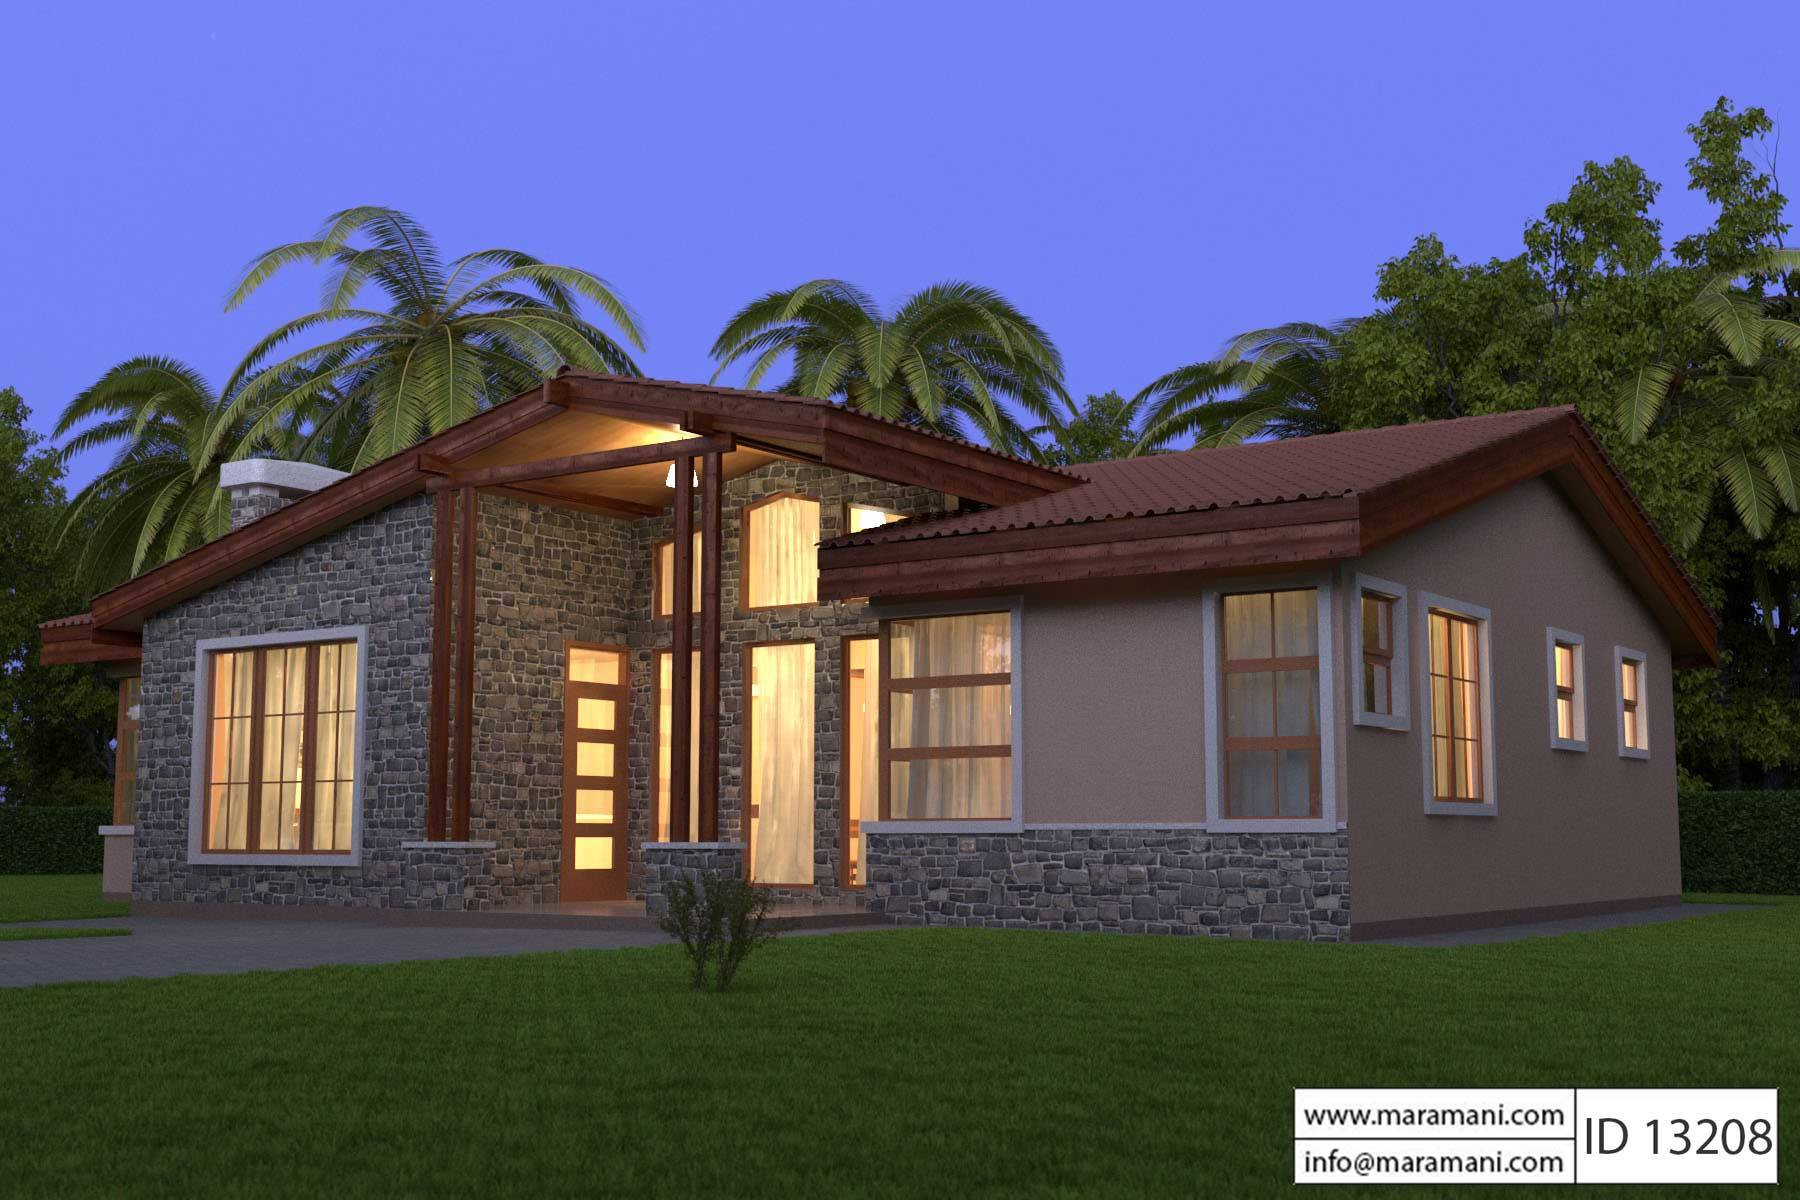 3 Bedroom Home Design Id 13208 House Designs By Maramani